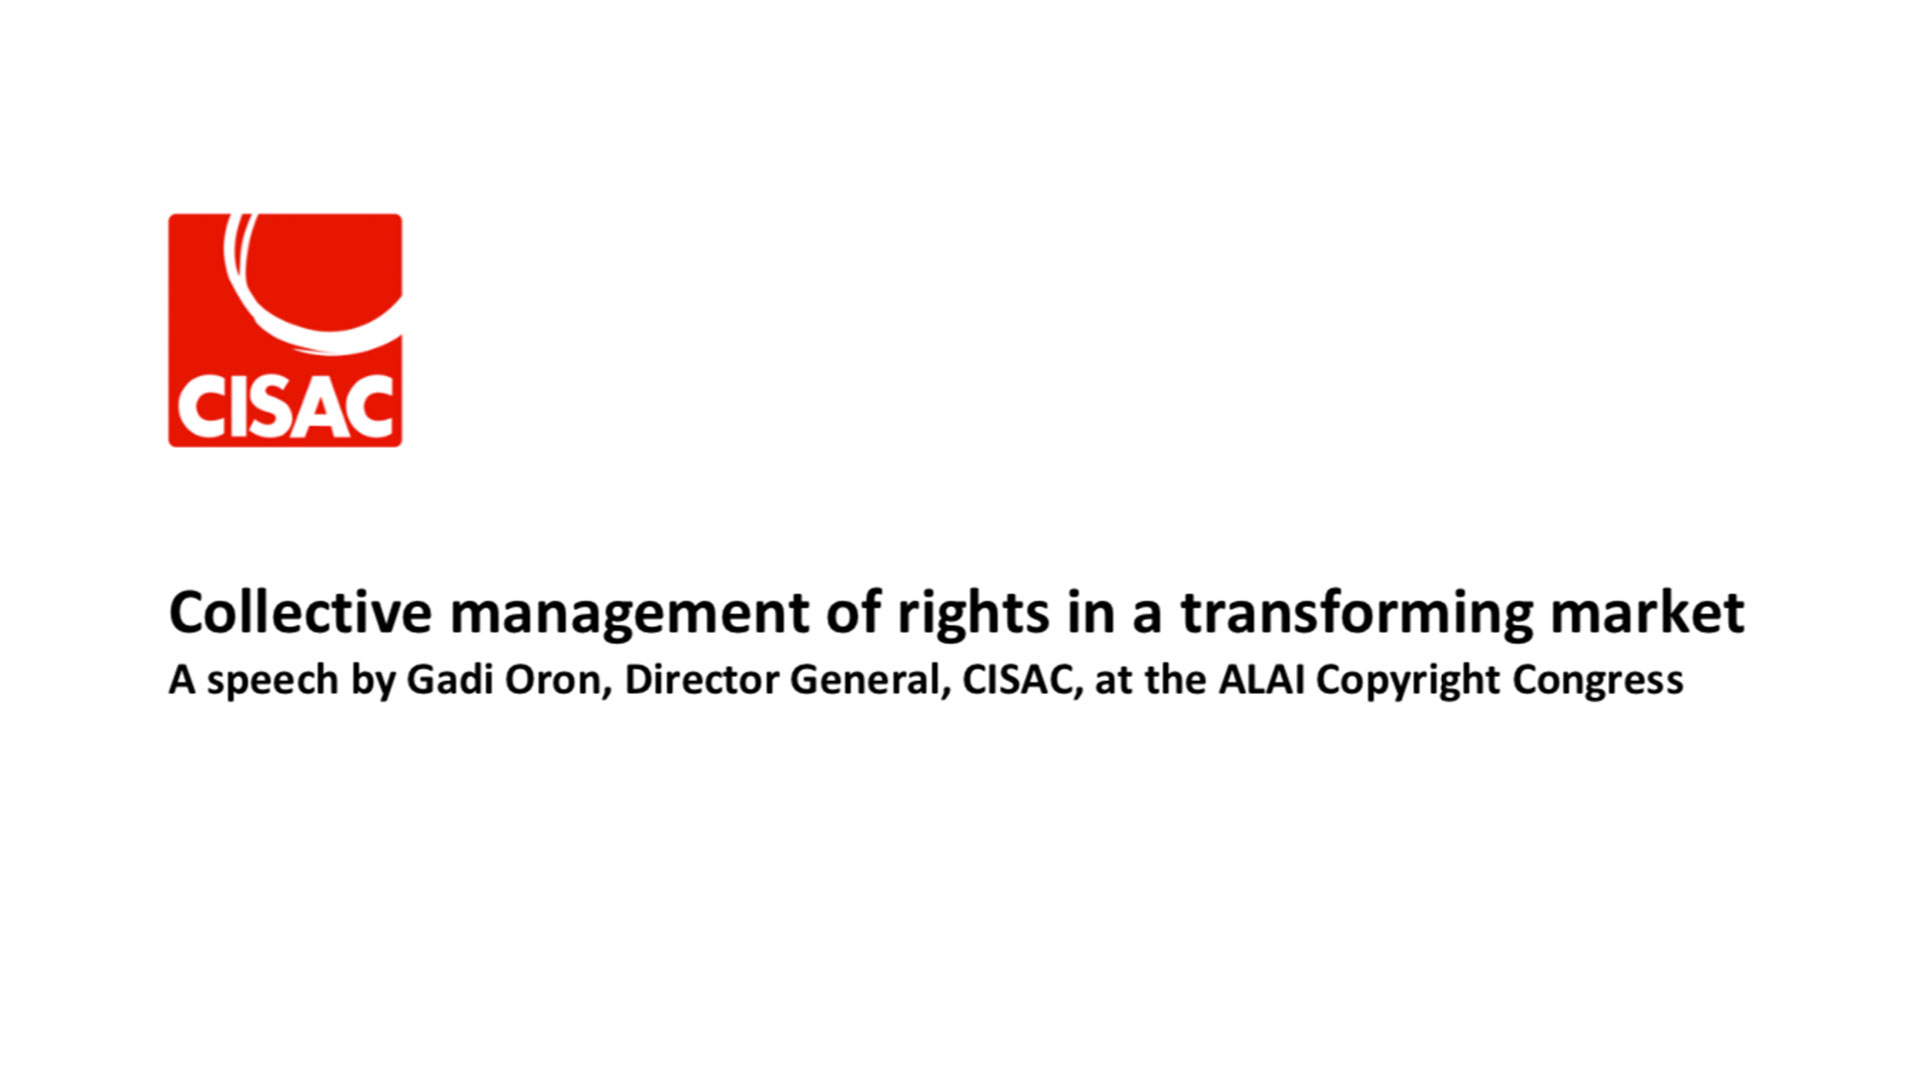 Fairness Rocks News Collective management of rights in a transforming market: A speech by Gadi Oron, Director General, CISAC, at the ALAI Copyright Congress